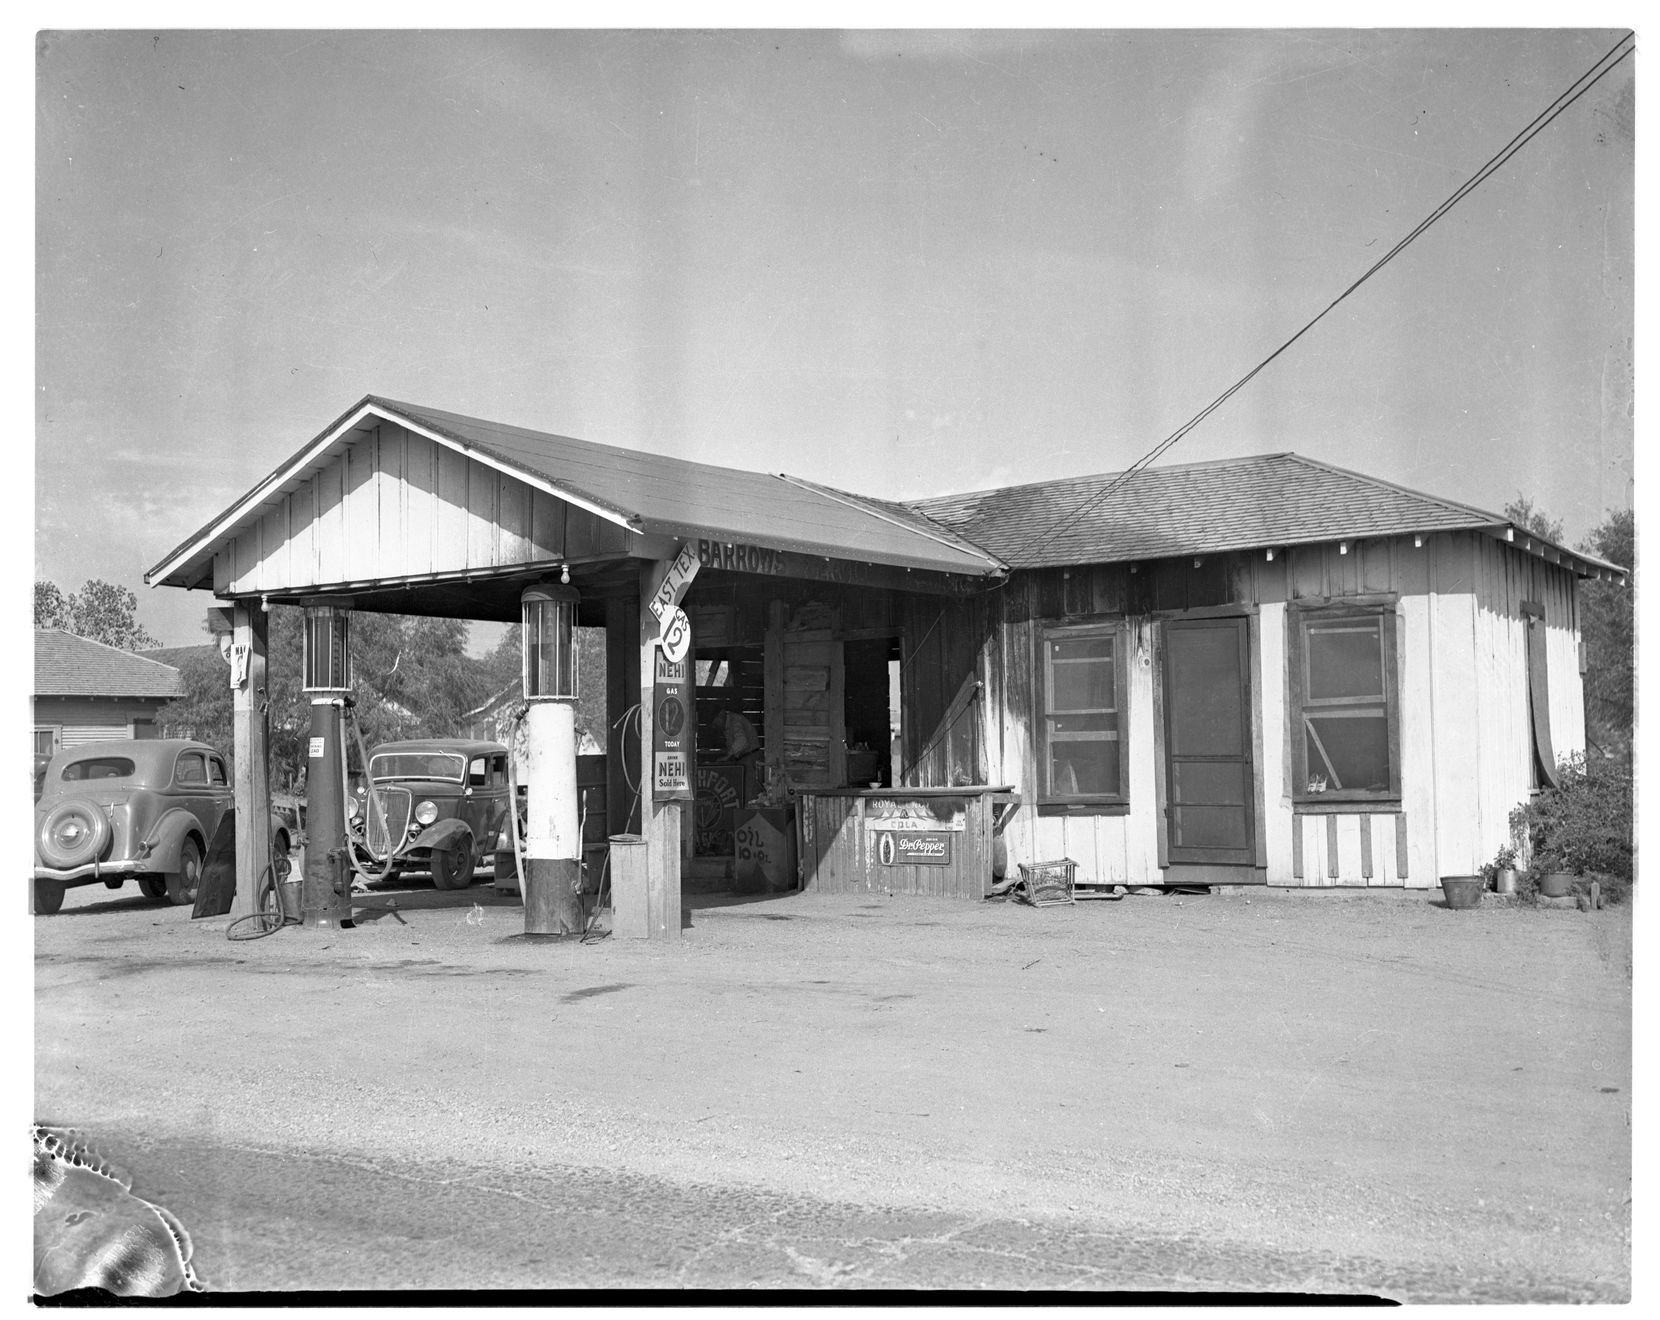 The Barrow family filling station and home, located on what was then called Eagle Ford Road in Dallas. Exact date unknown.